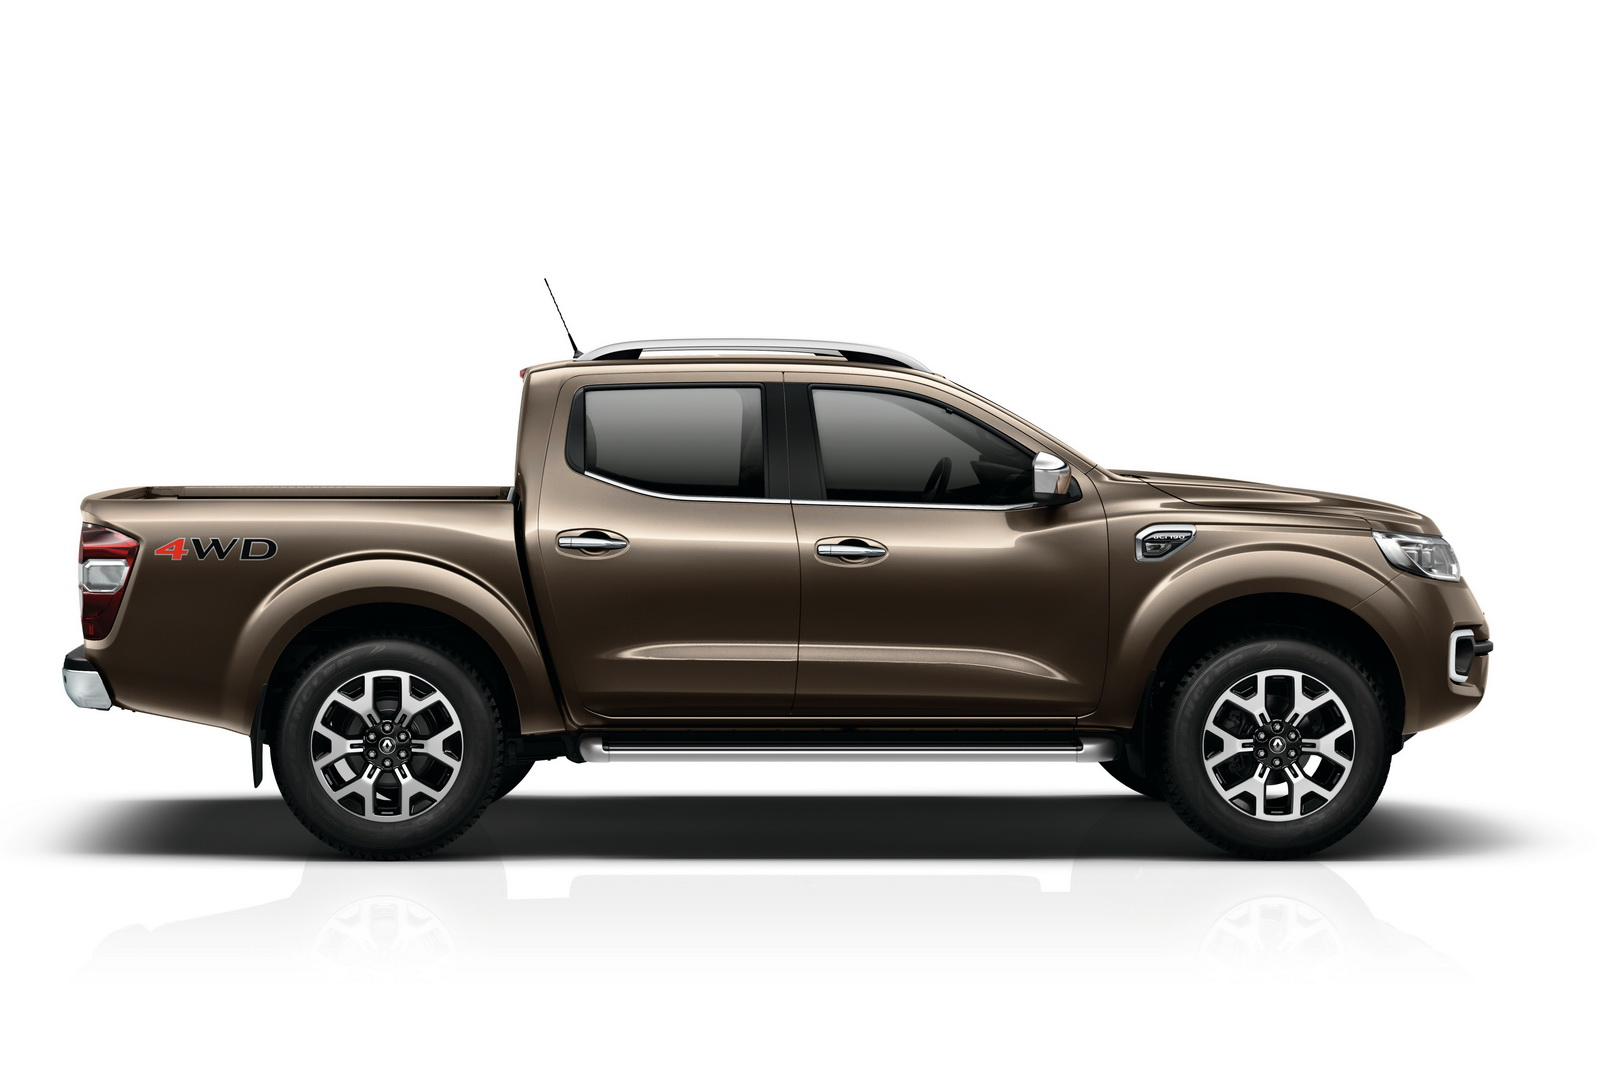 renault pulls the wraps off new alaskan pickup truck carscoops. Black Bedroom Furniture Sets. Home Design Ideas